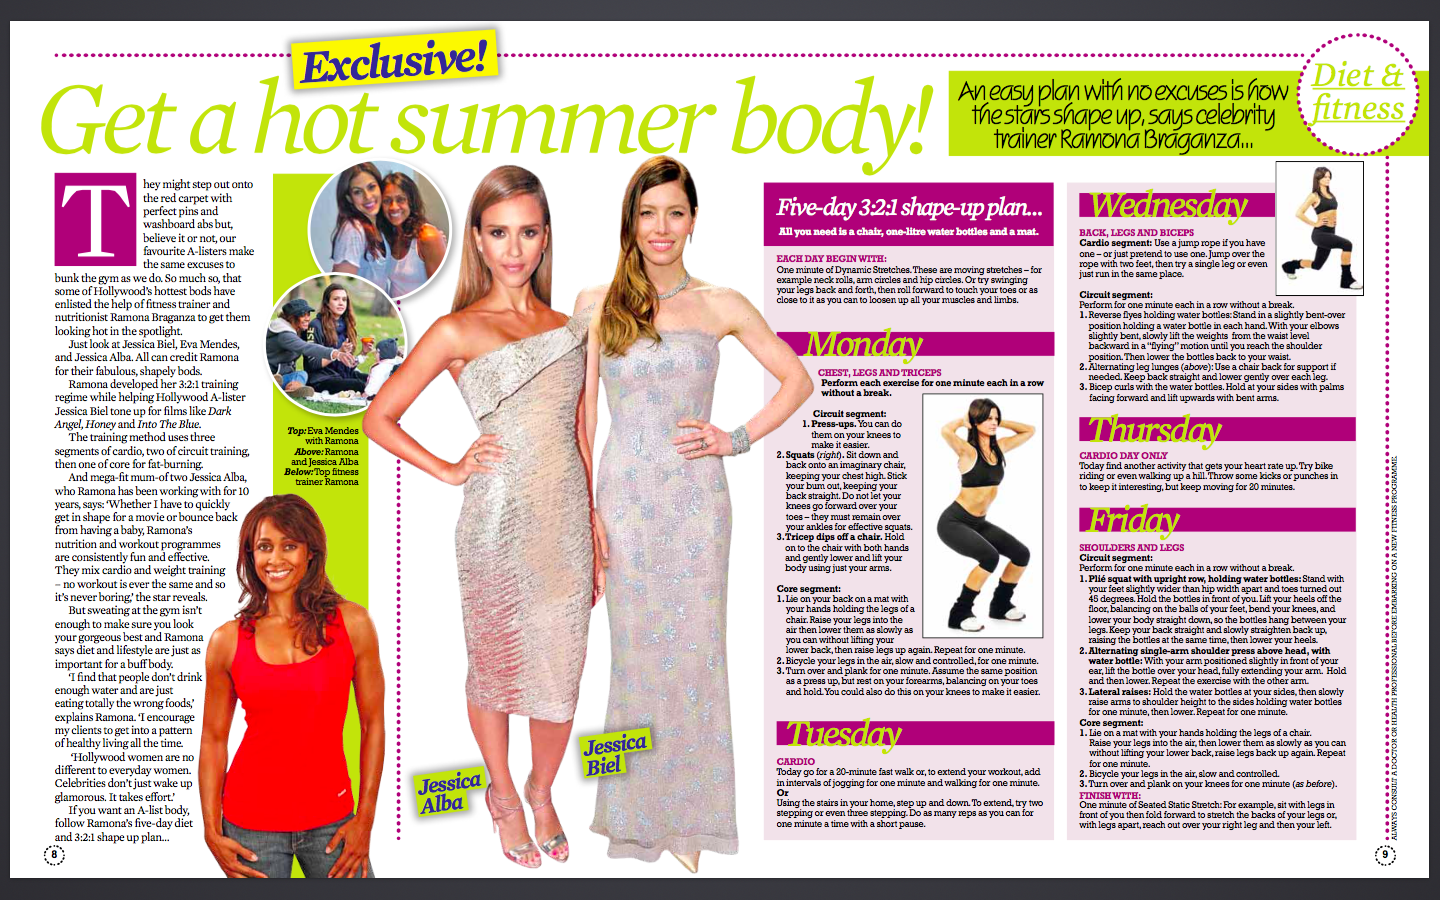 OK! Summer Special: How to get a hot summer body